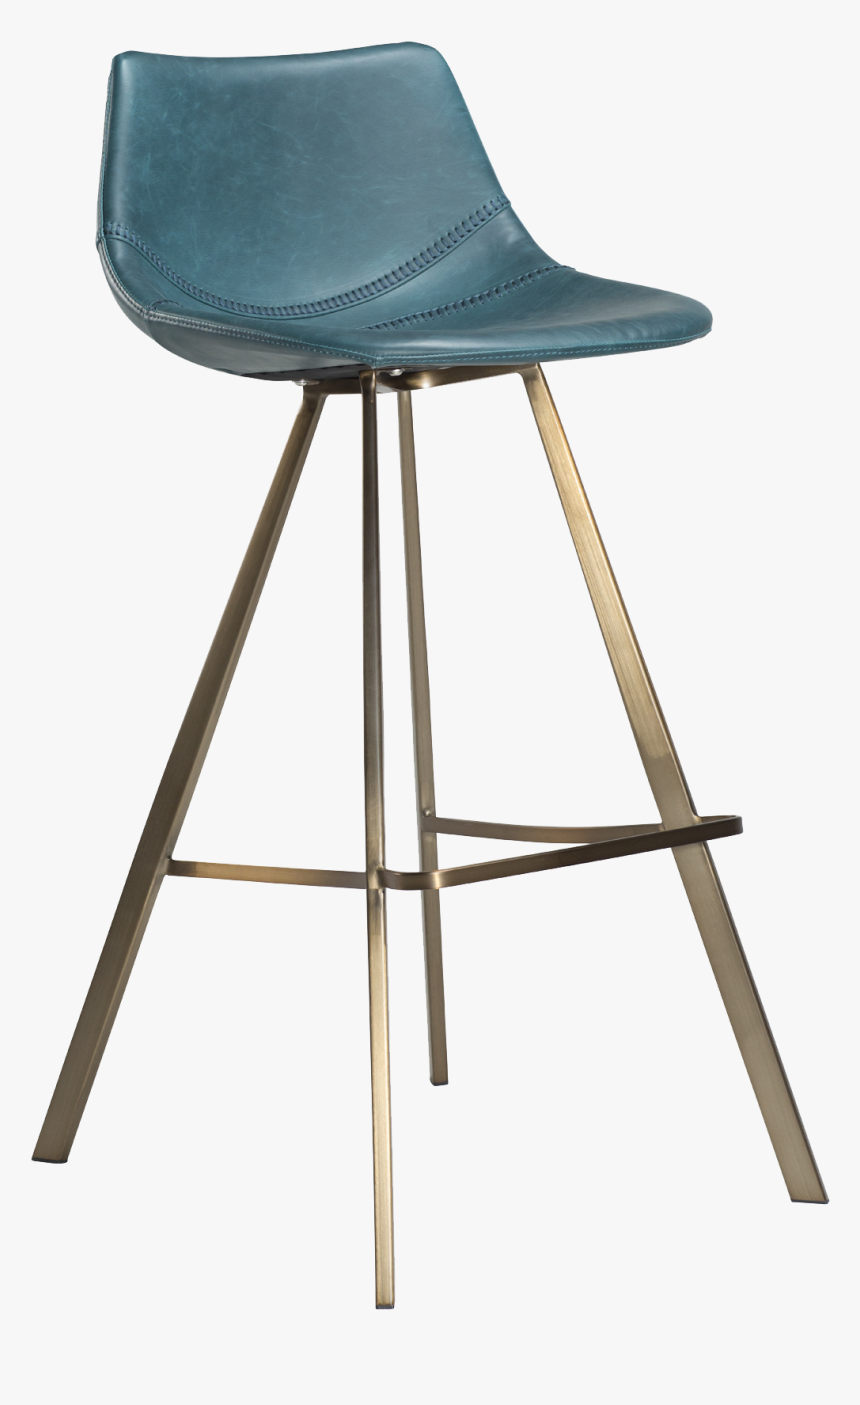 Dan Form Pitch Barstool, HD Png Download, Free Download